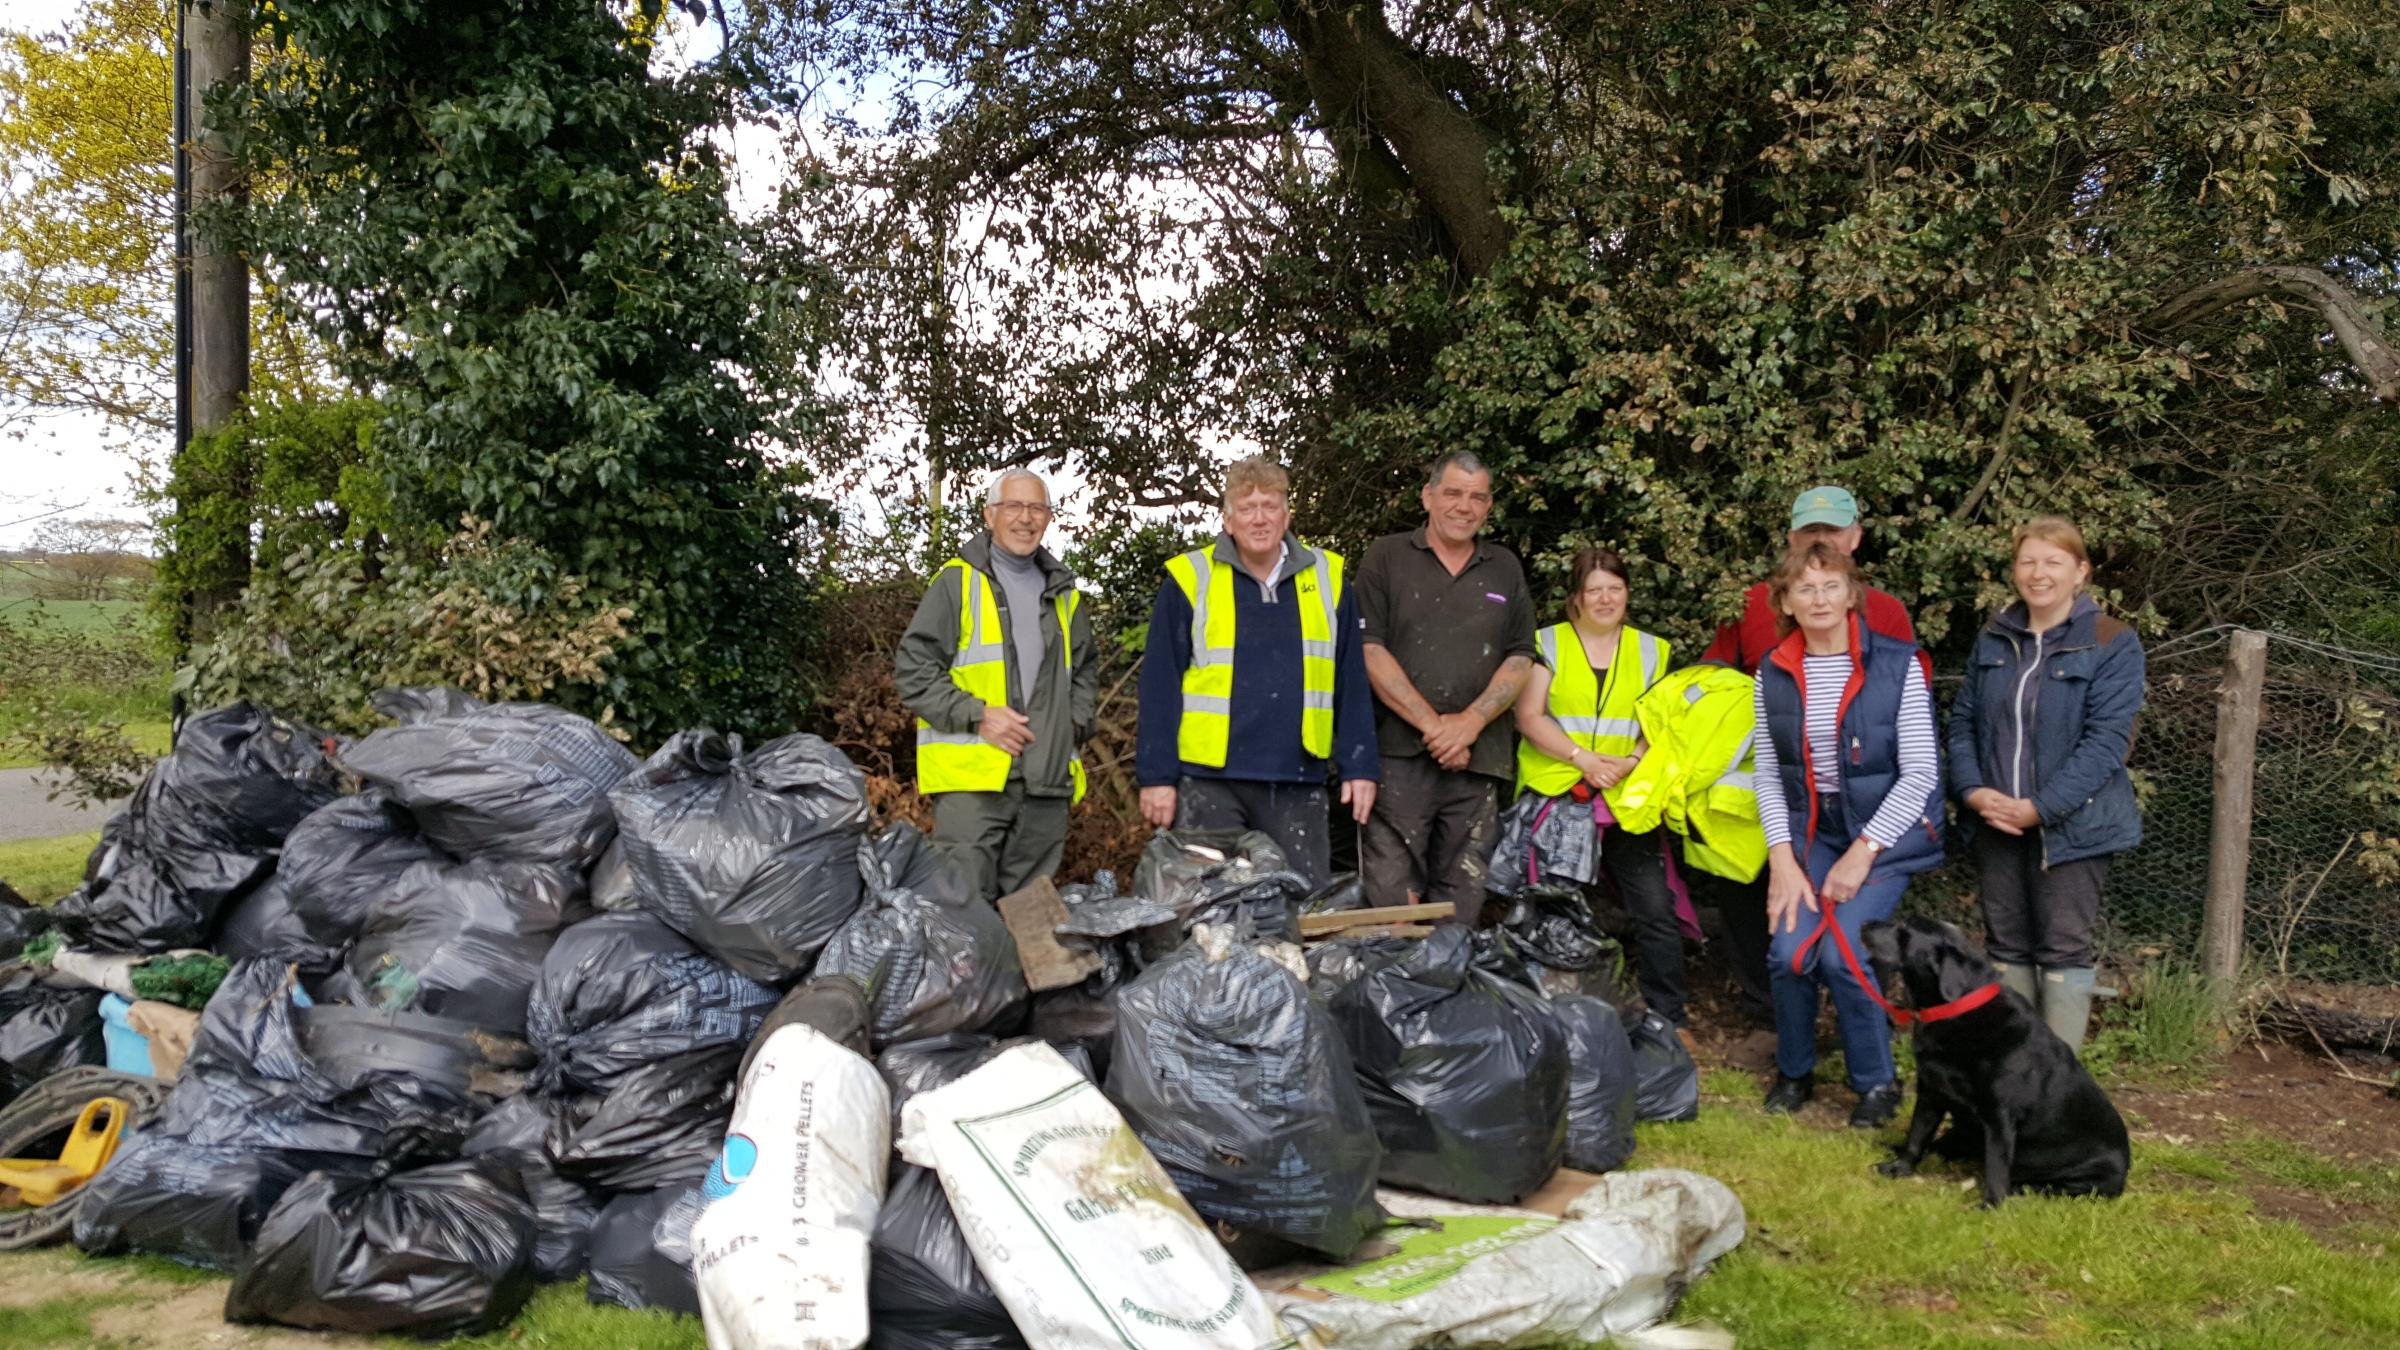 RUBBISH: A litter pick on the Dengie collected more than 50 bags of rubbish